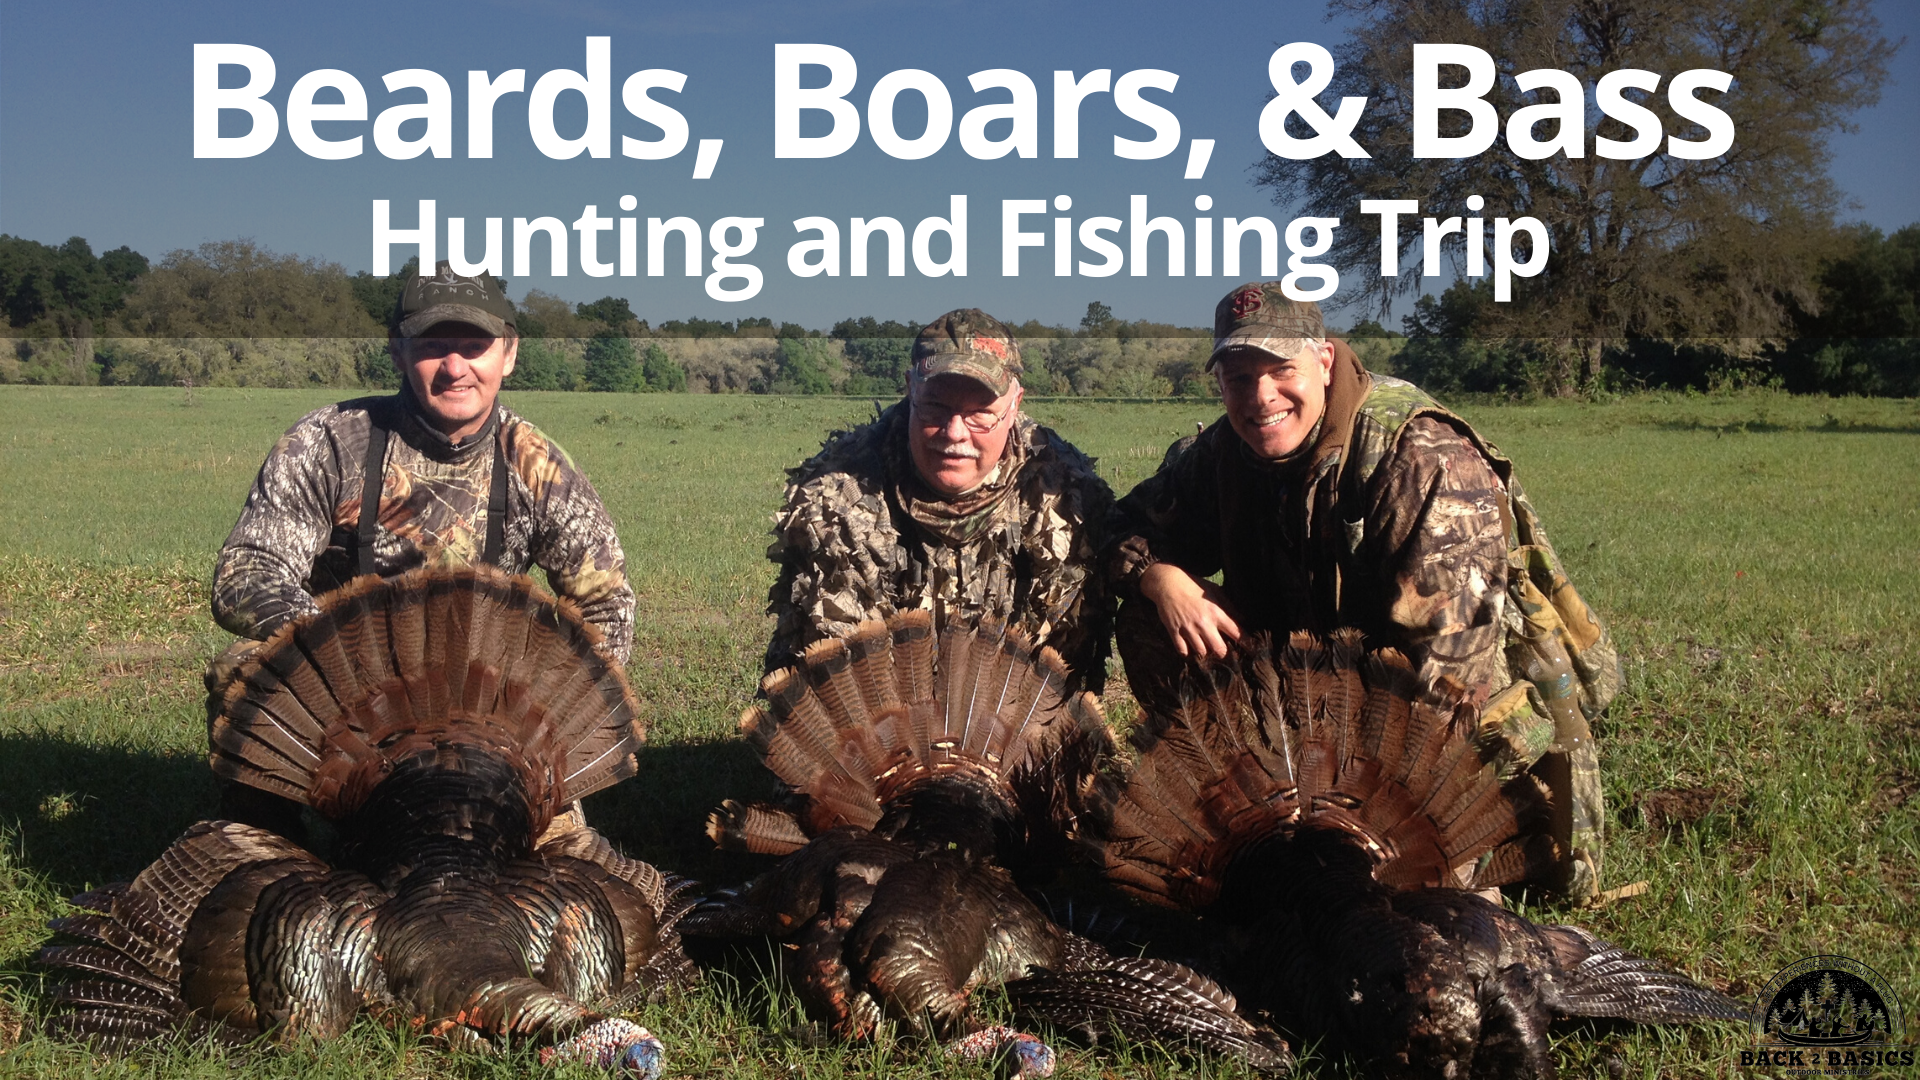 beards, boars, and bass hunting and fishing trip, back2basics outdoor ministries